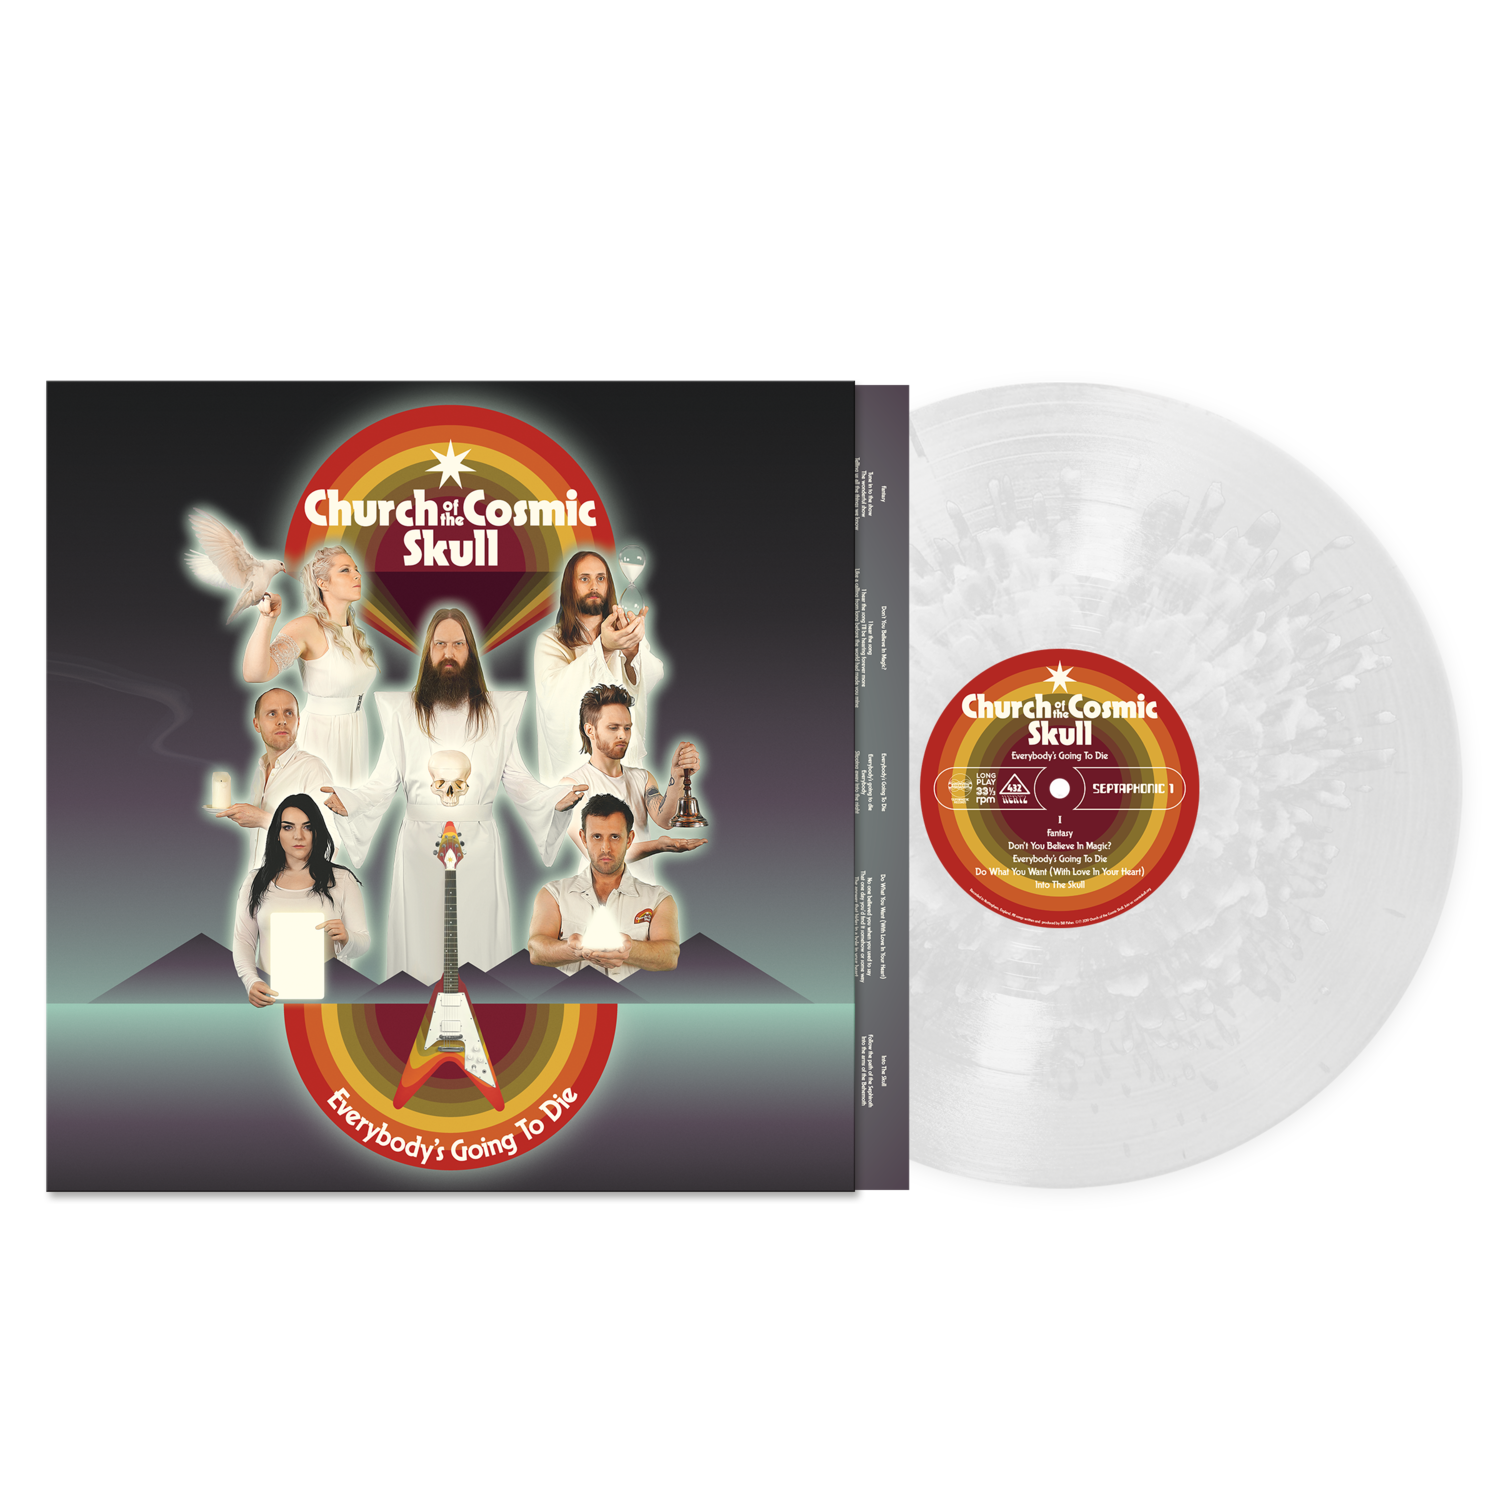 Church Of The Cosmic Skull - Everybody's Going To Die - (Exploding Crystal Edition) LP (PreOrder)